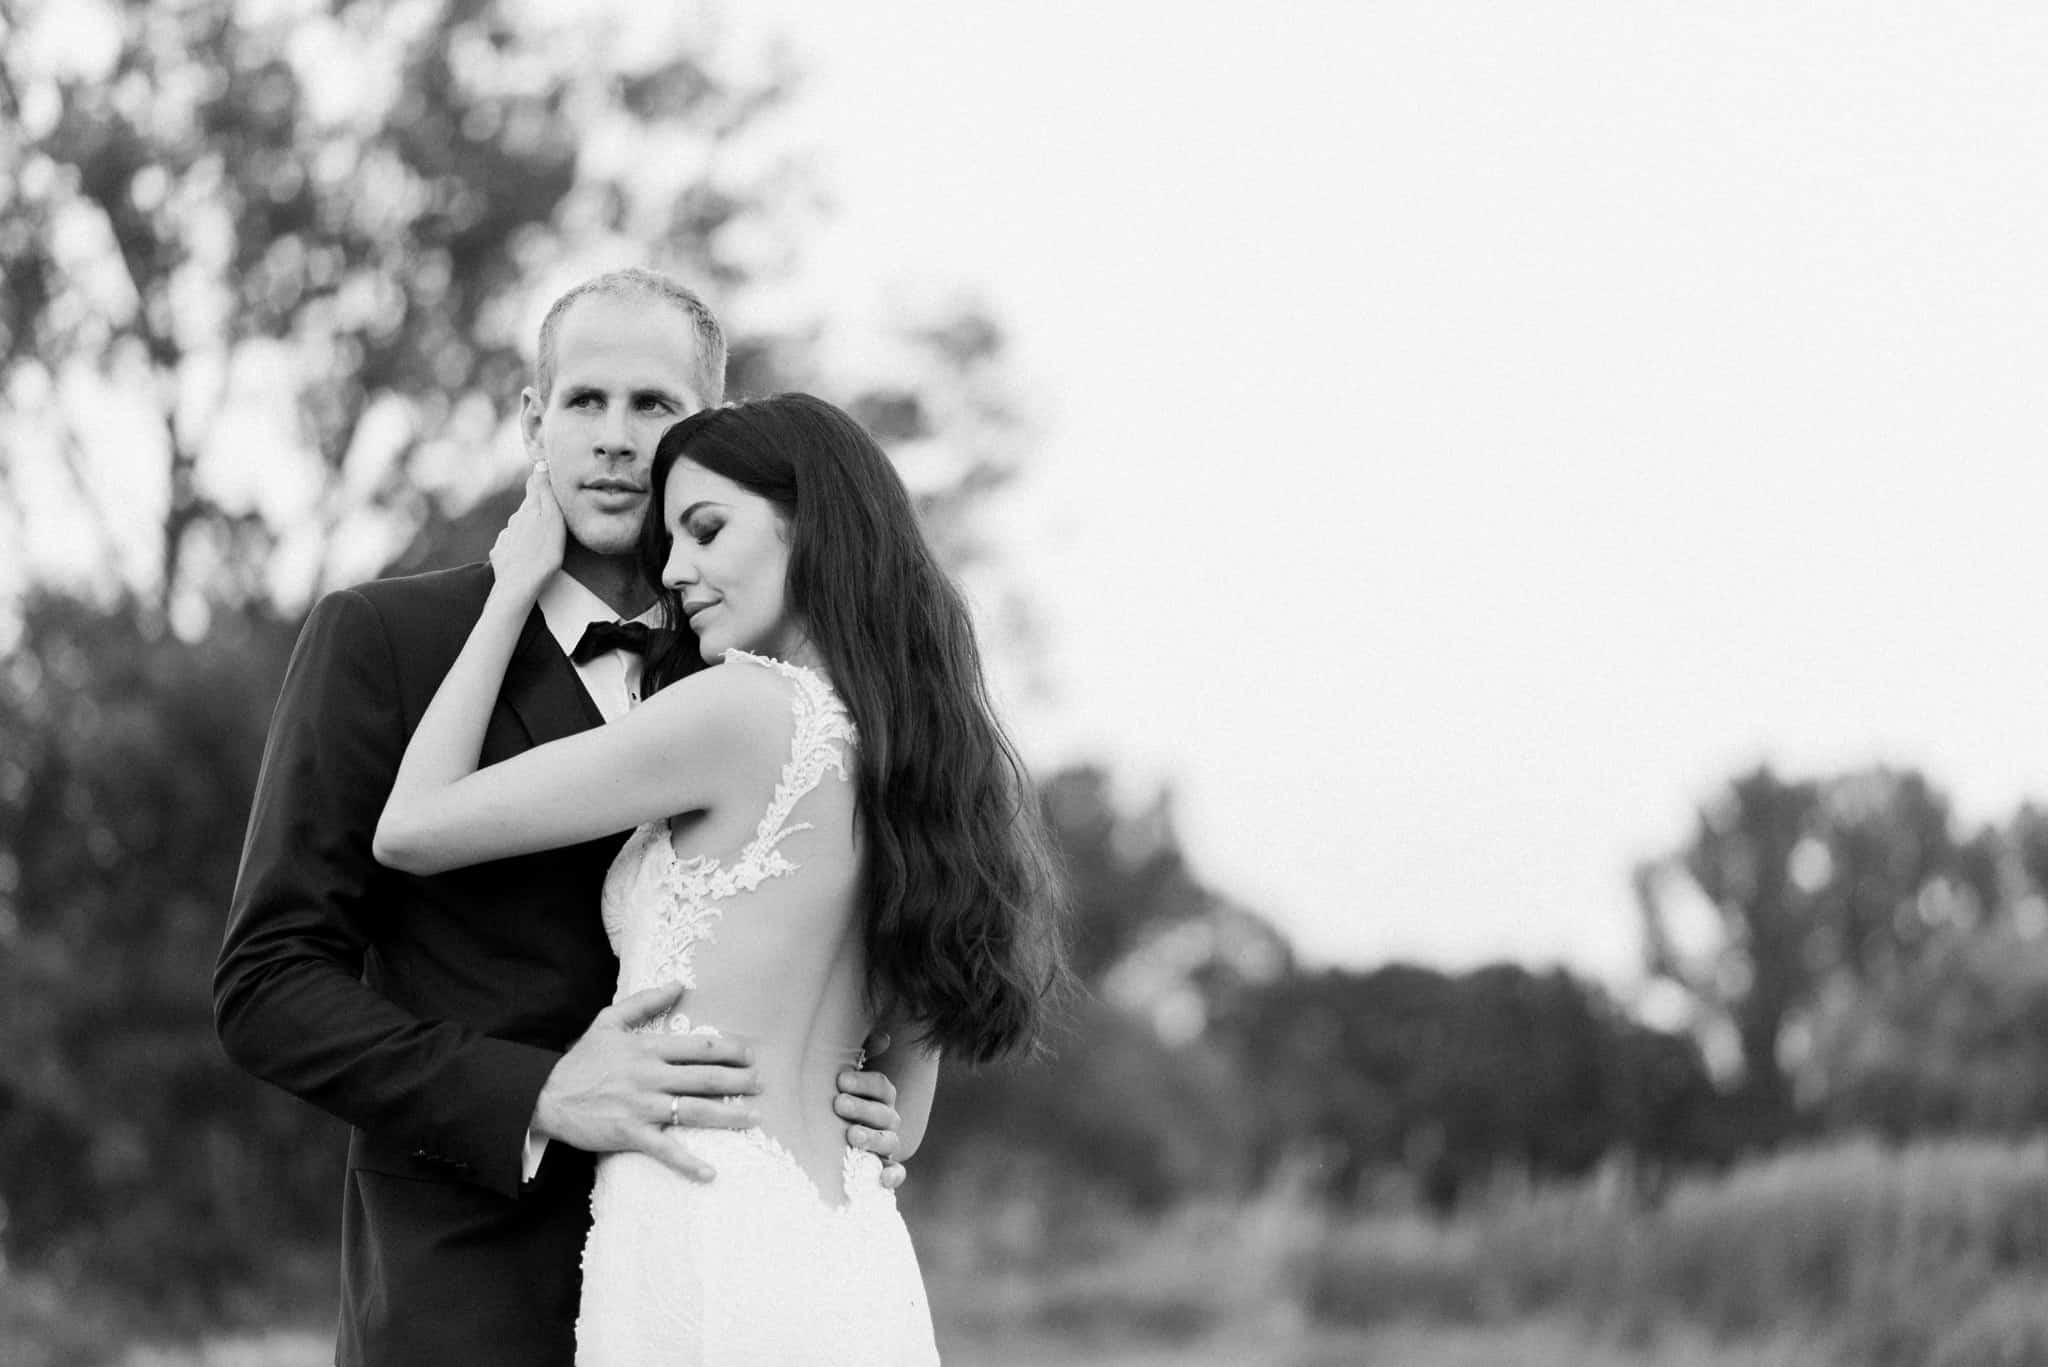 Wedoverhills_Prewedding_Film_Photographer_Black_And_White_0046